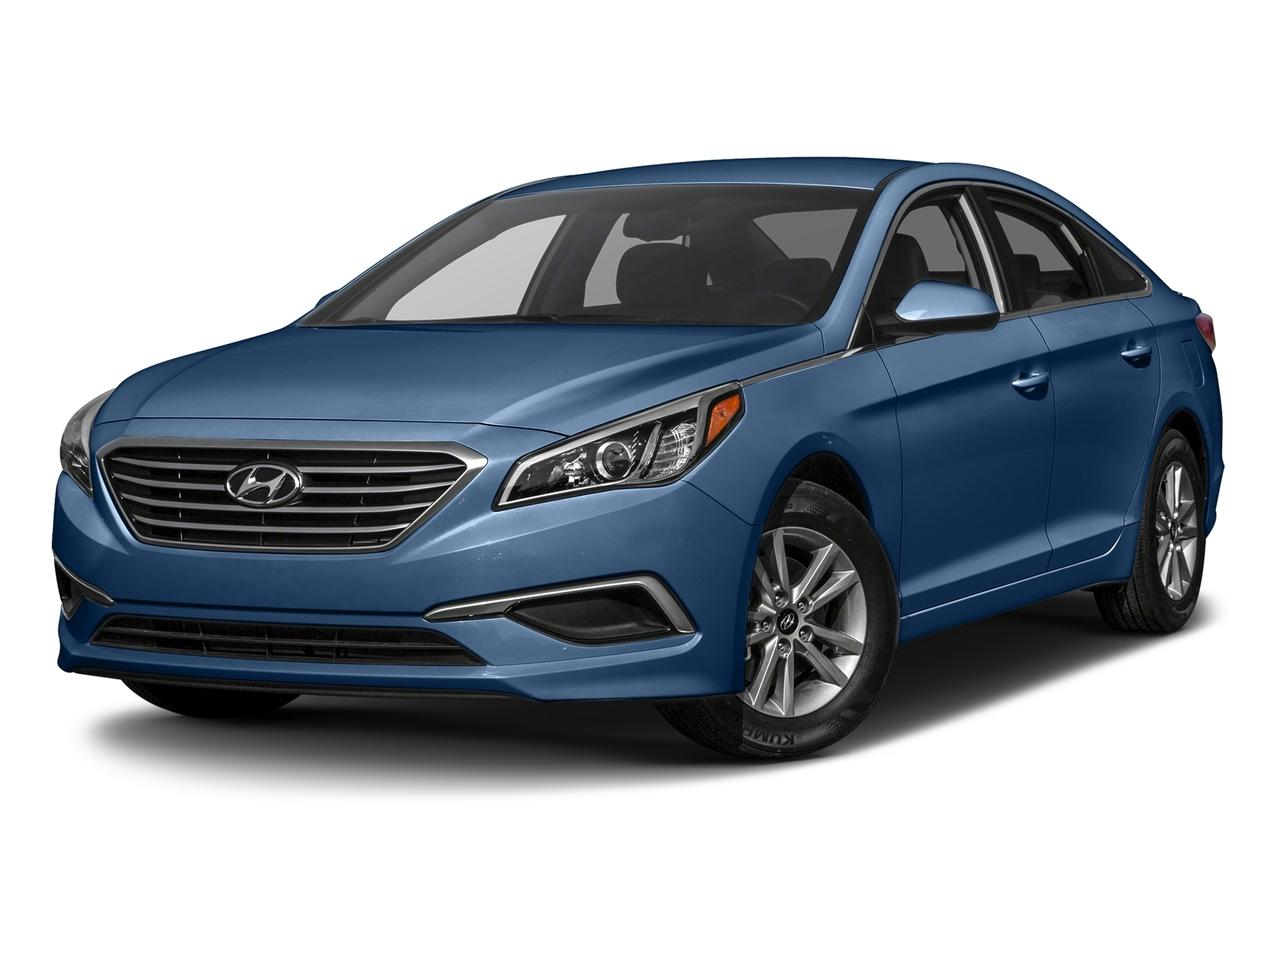 2017 Hyundai Sonata Vehicle Photo in Odessa, TX 79762